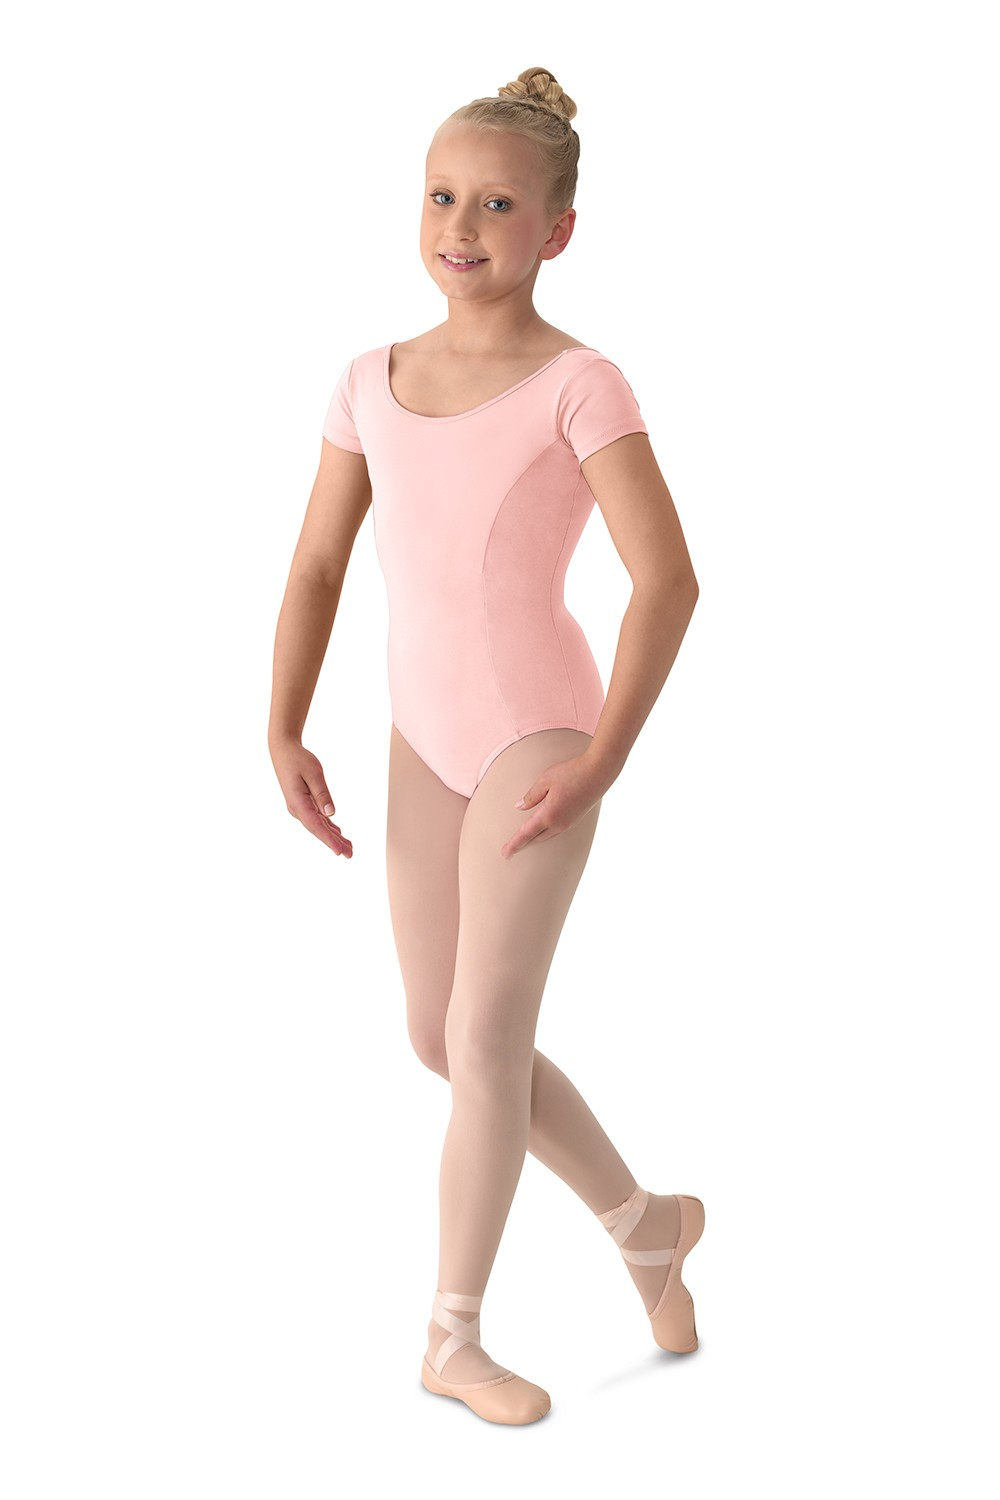 Cap Sleeve Leotard Girls Short Sleeve Leotards